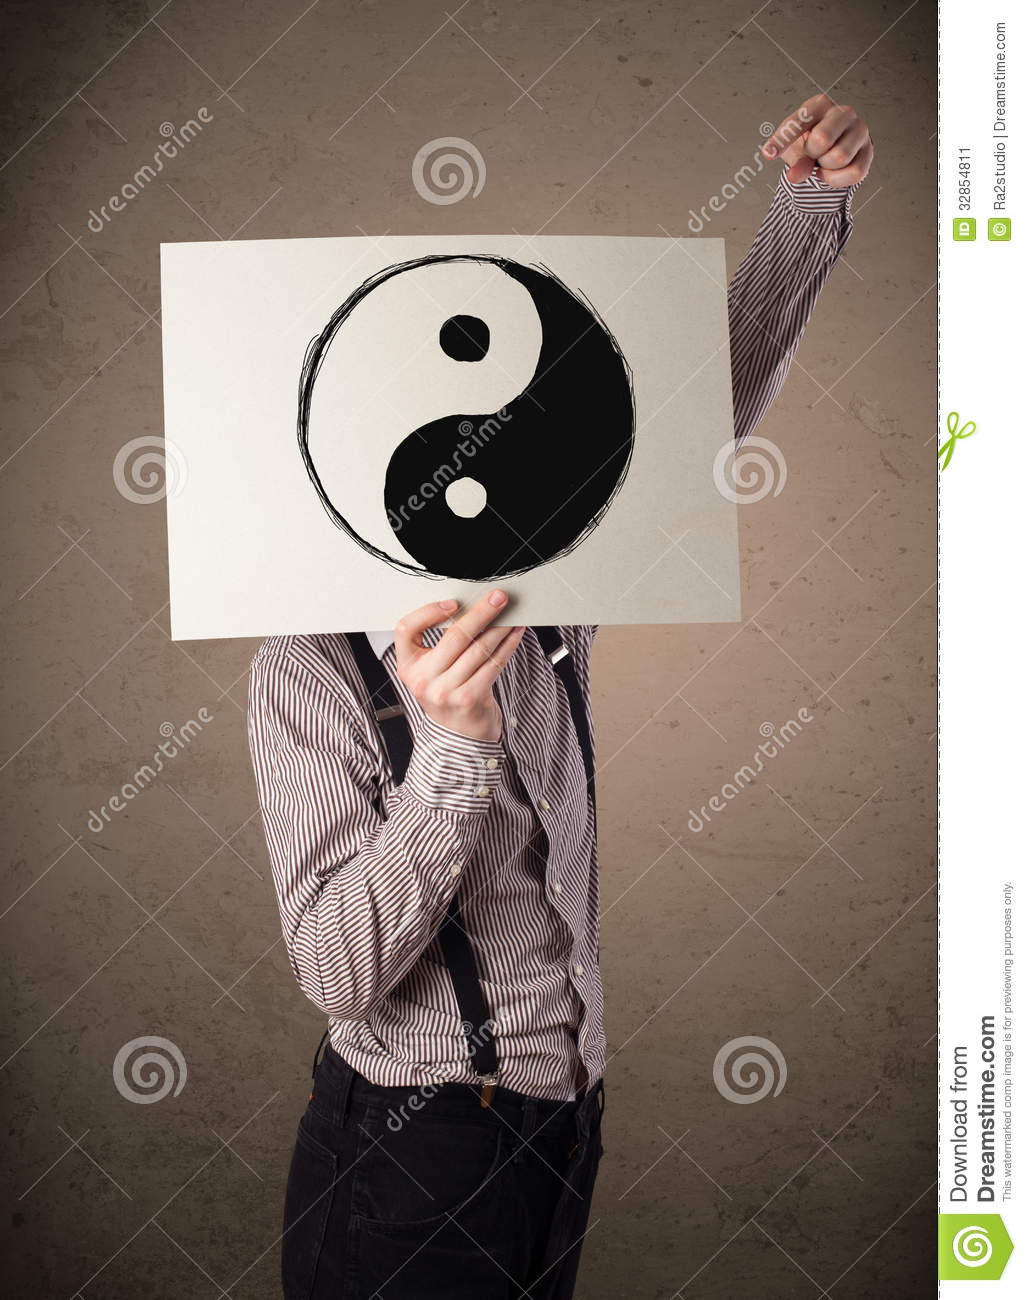 yin and yang essay Introduction when i reviewed the character questions for this exercise, i initially thought it would be easy i loved talking about myself after all, in.